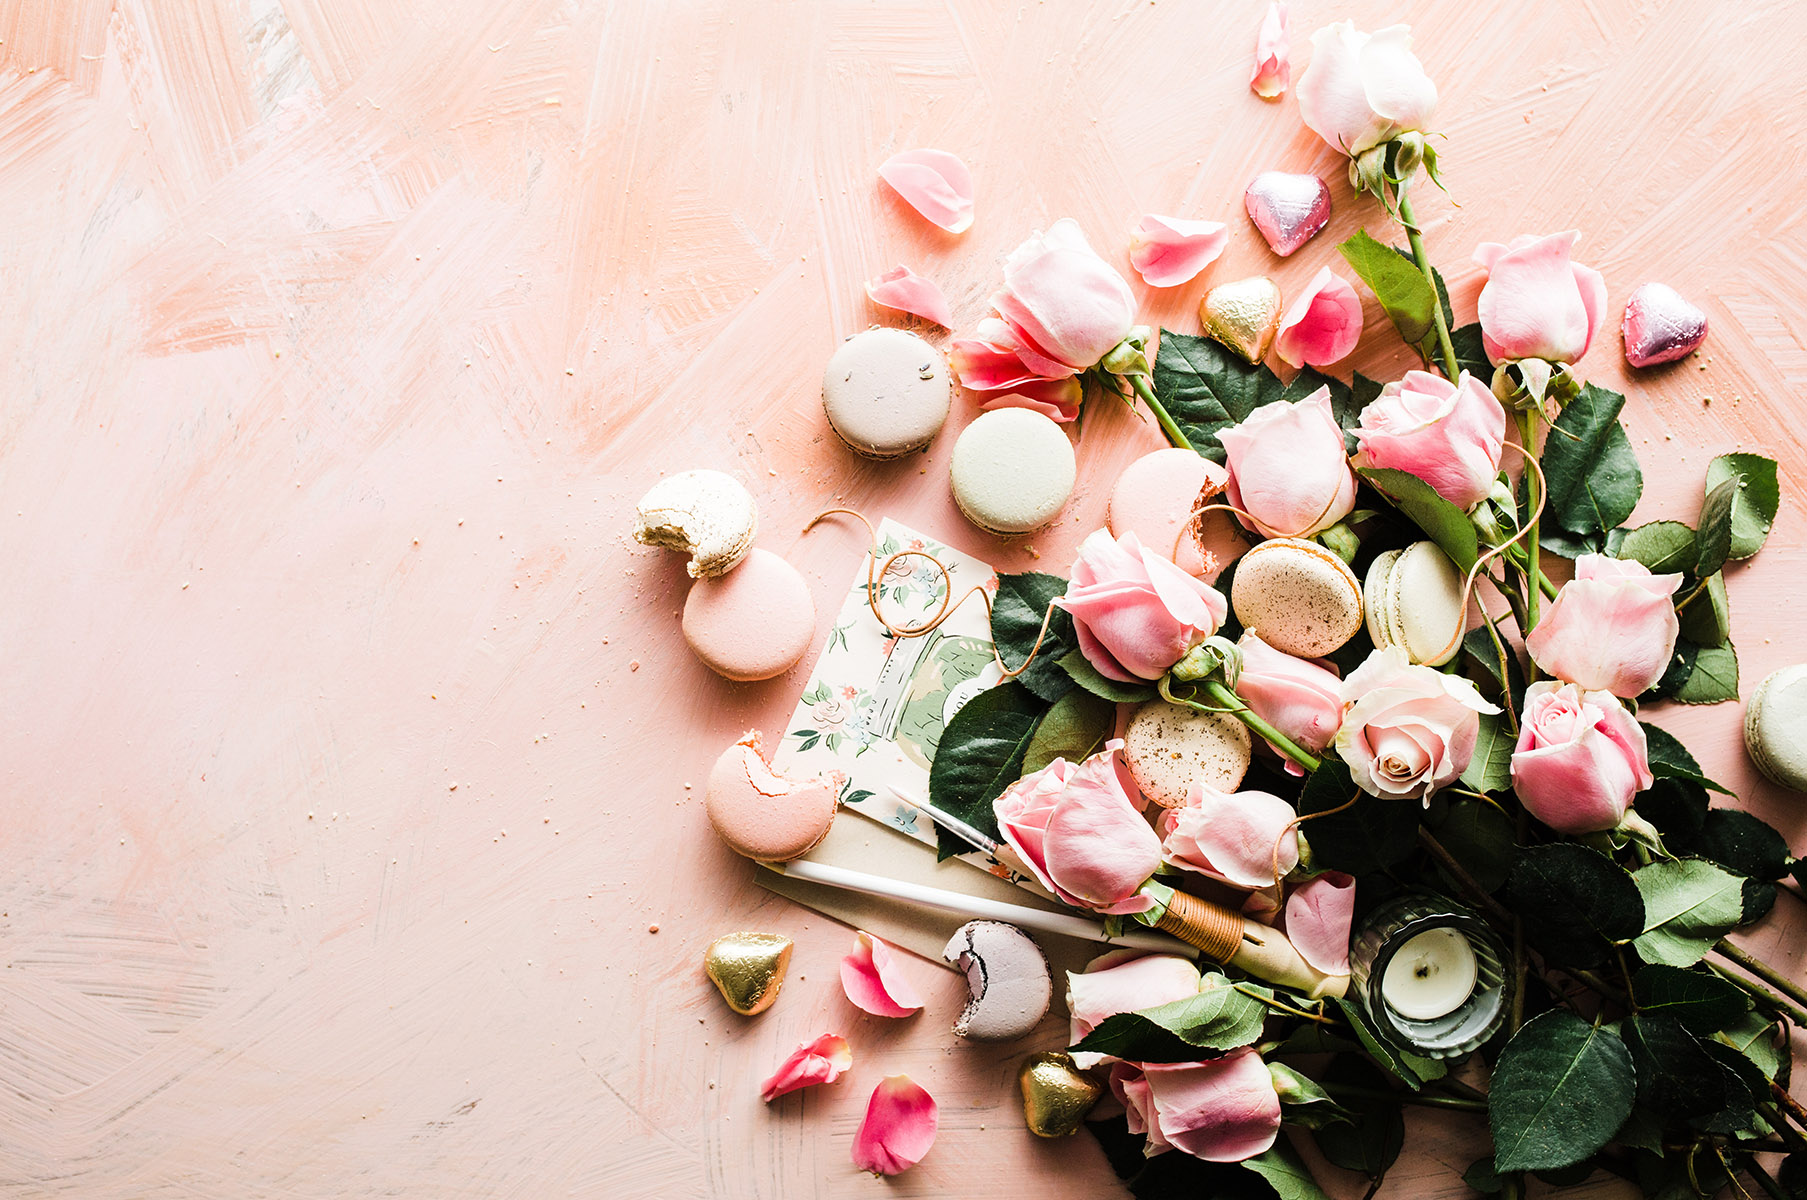 pink roses, with pink and white macarons and green leafery